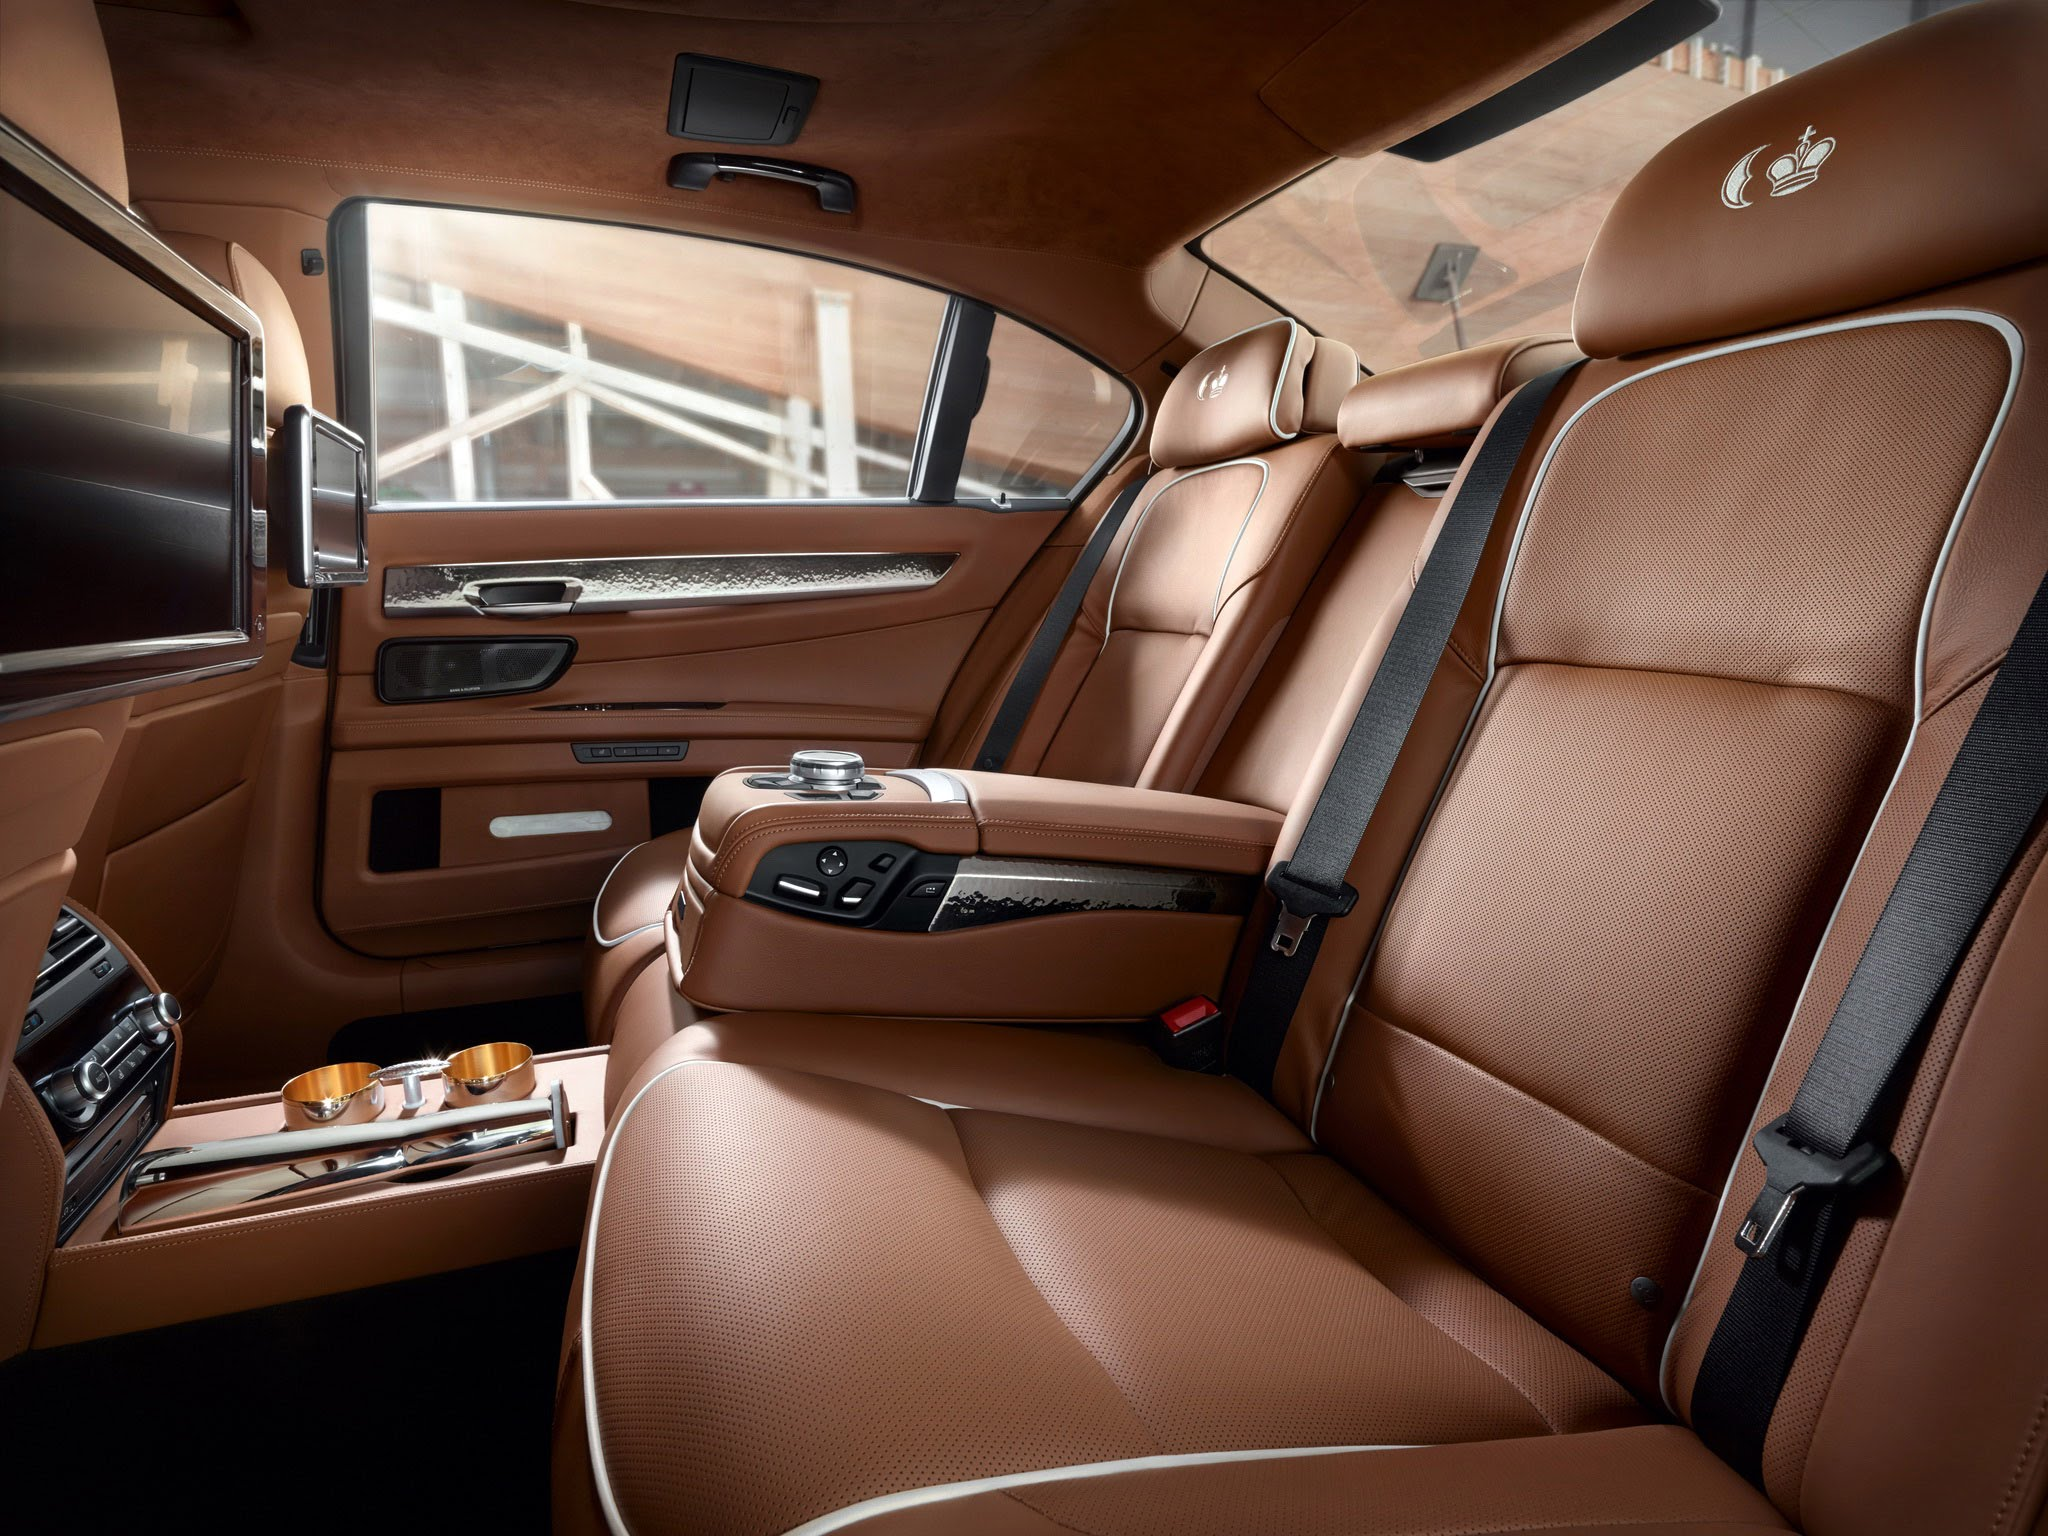 New Interior BMW 7-series 2016 - redesigned